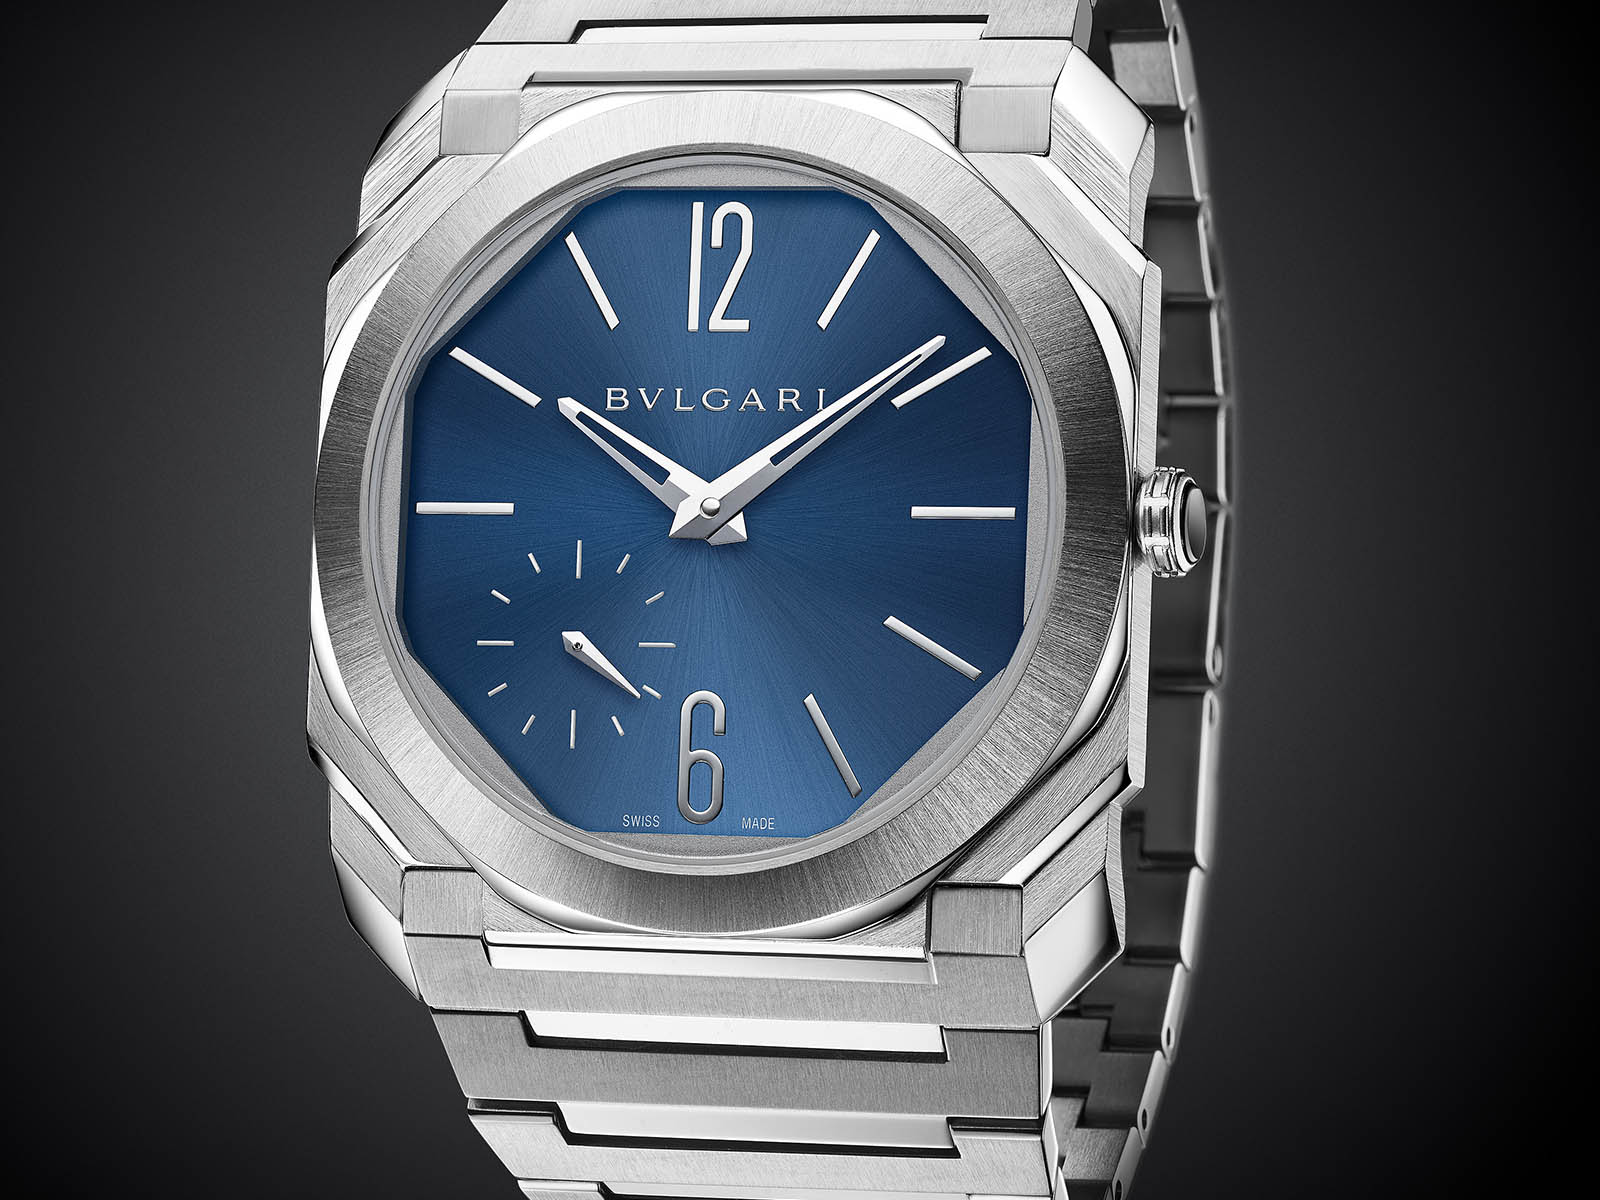 103431-bvlgari-octo-finissimo-blue-dial-in-steel-2.jpg